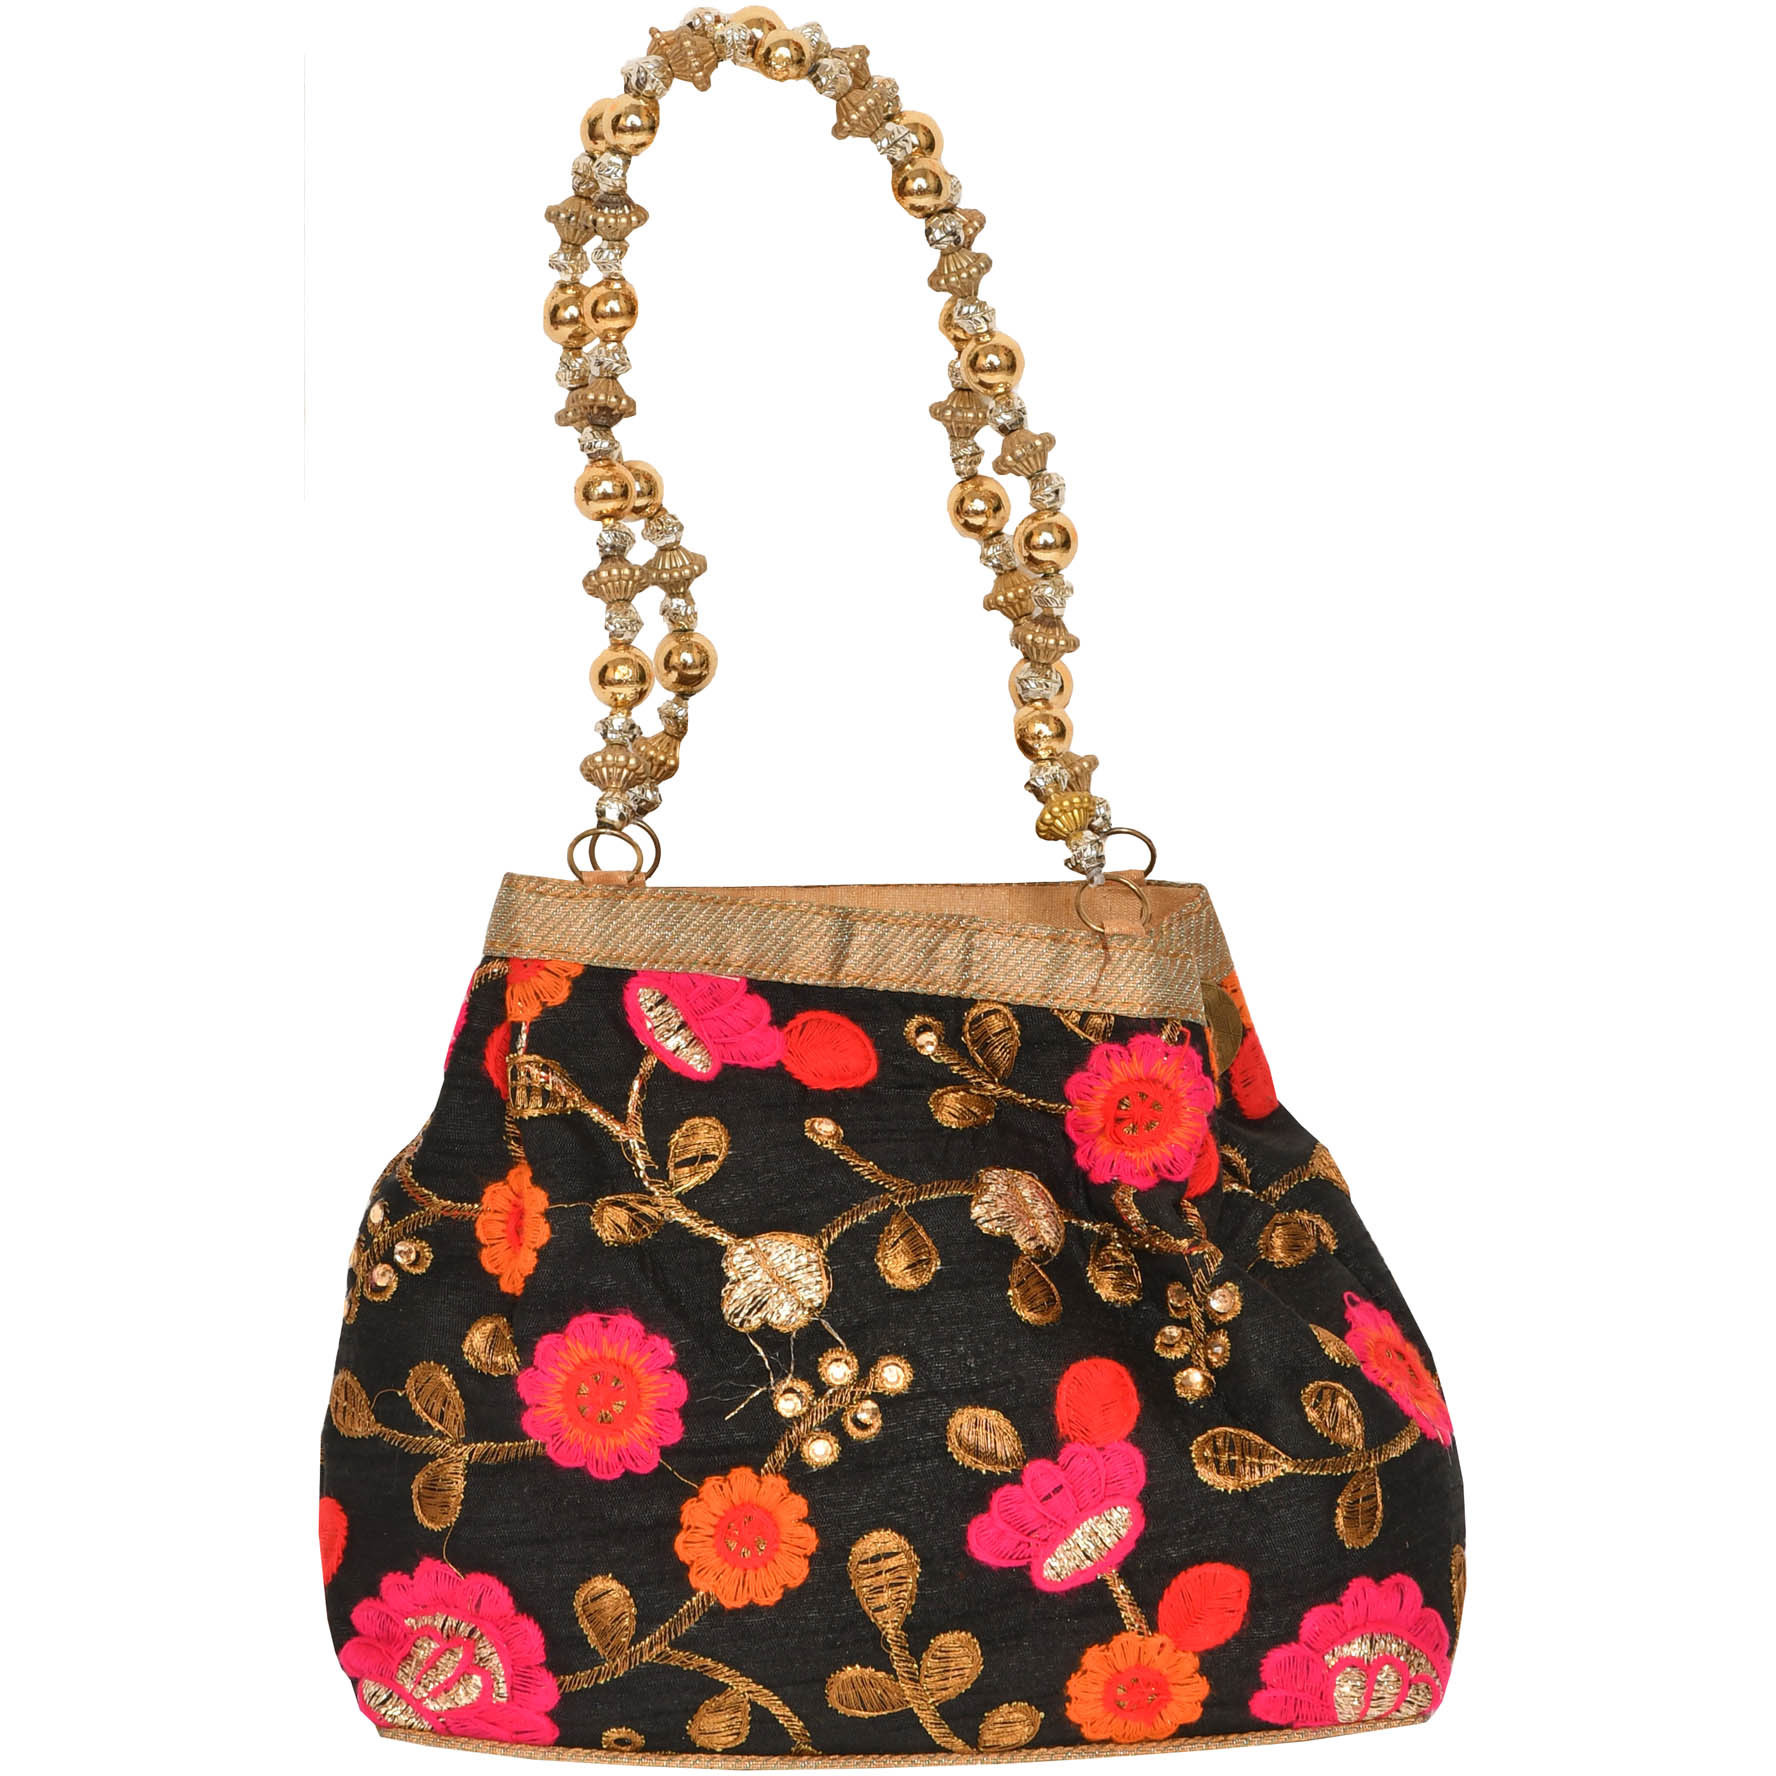 Caviar-Black Bracelet Bag with Embroidered Flowers and Beaded Handles